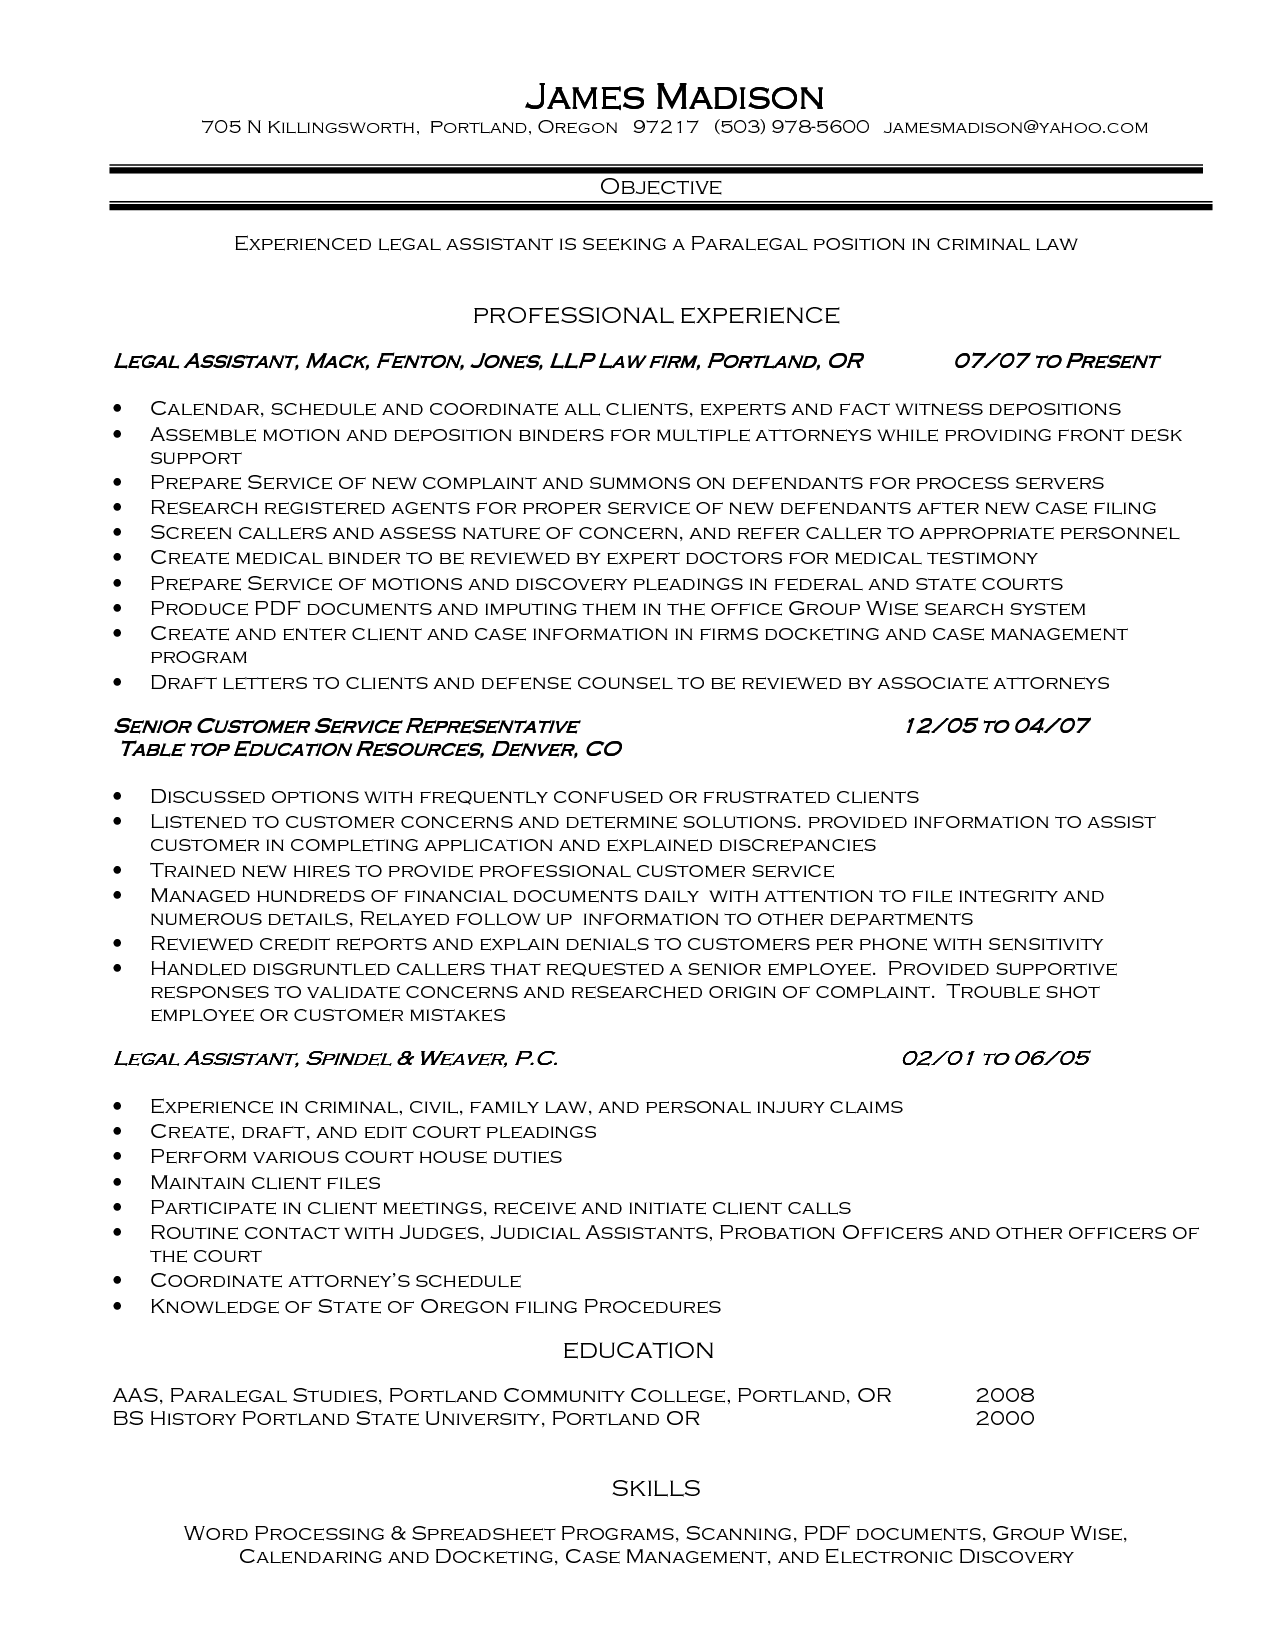 Example Of A Job Resume Legal Secretary Resume Examples  Httpwwwjobresumewebsite